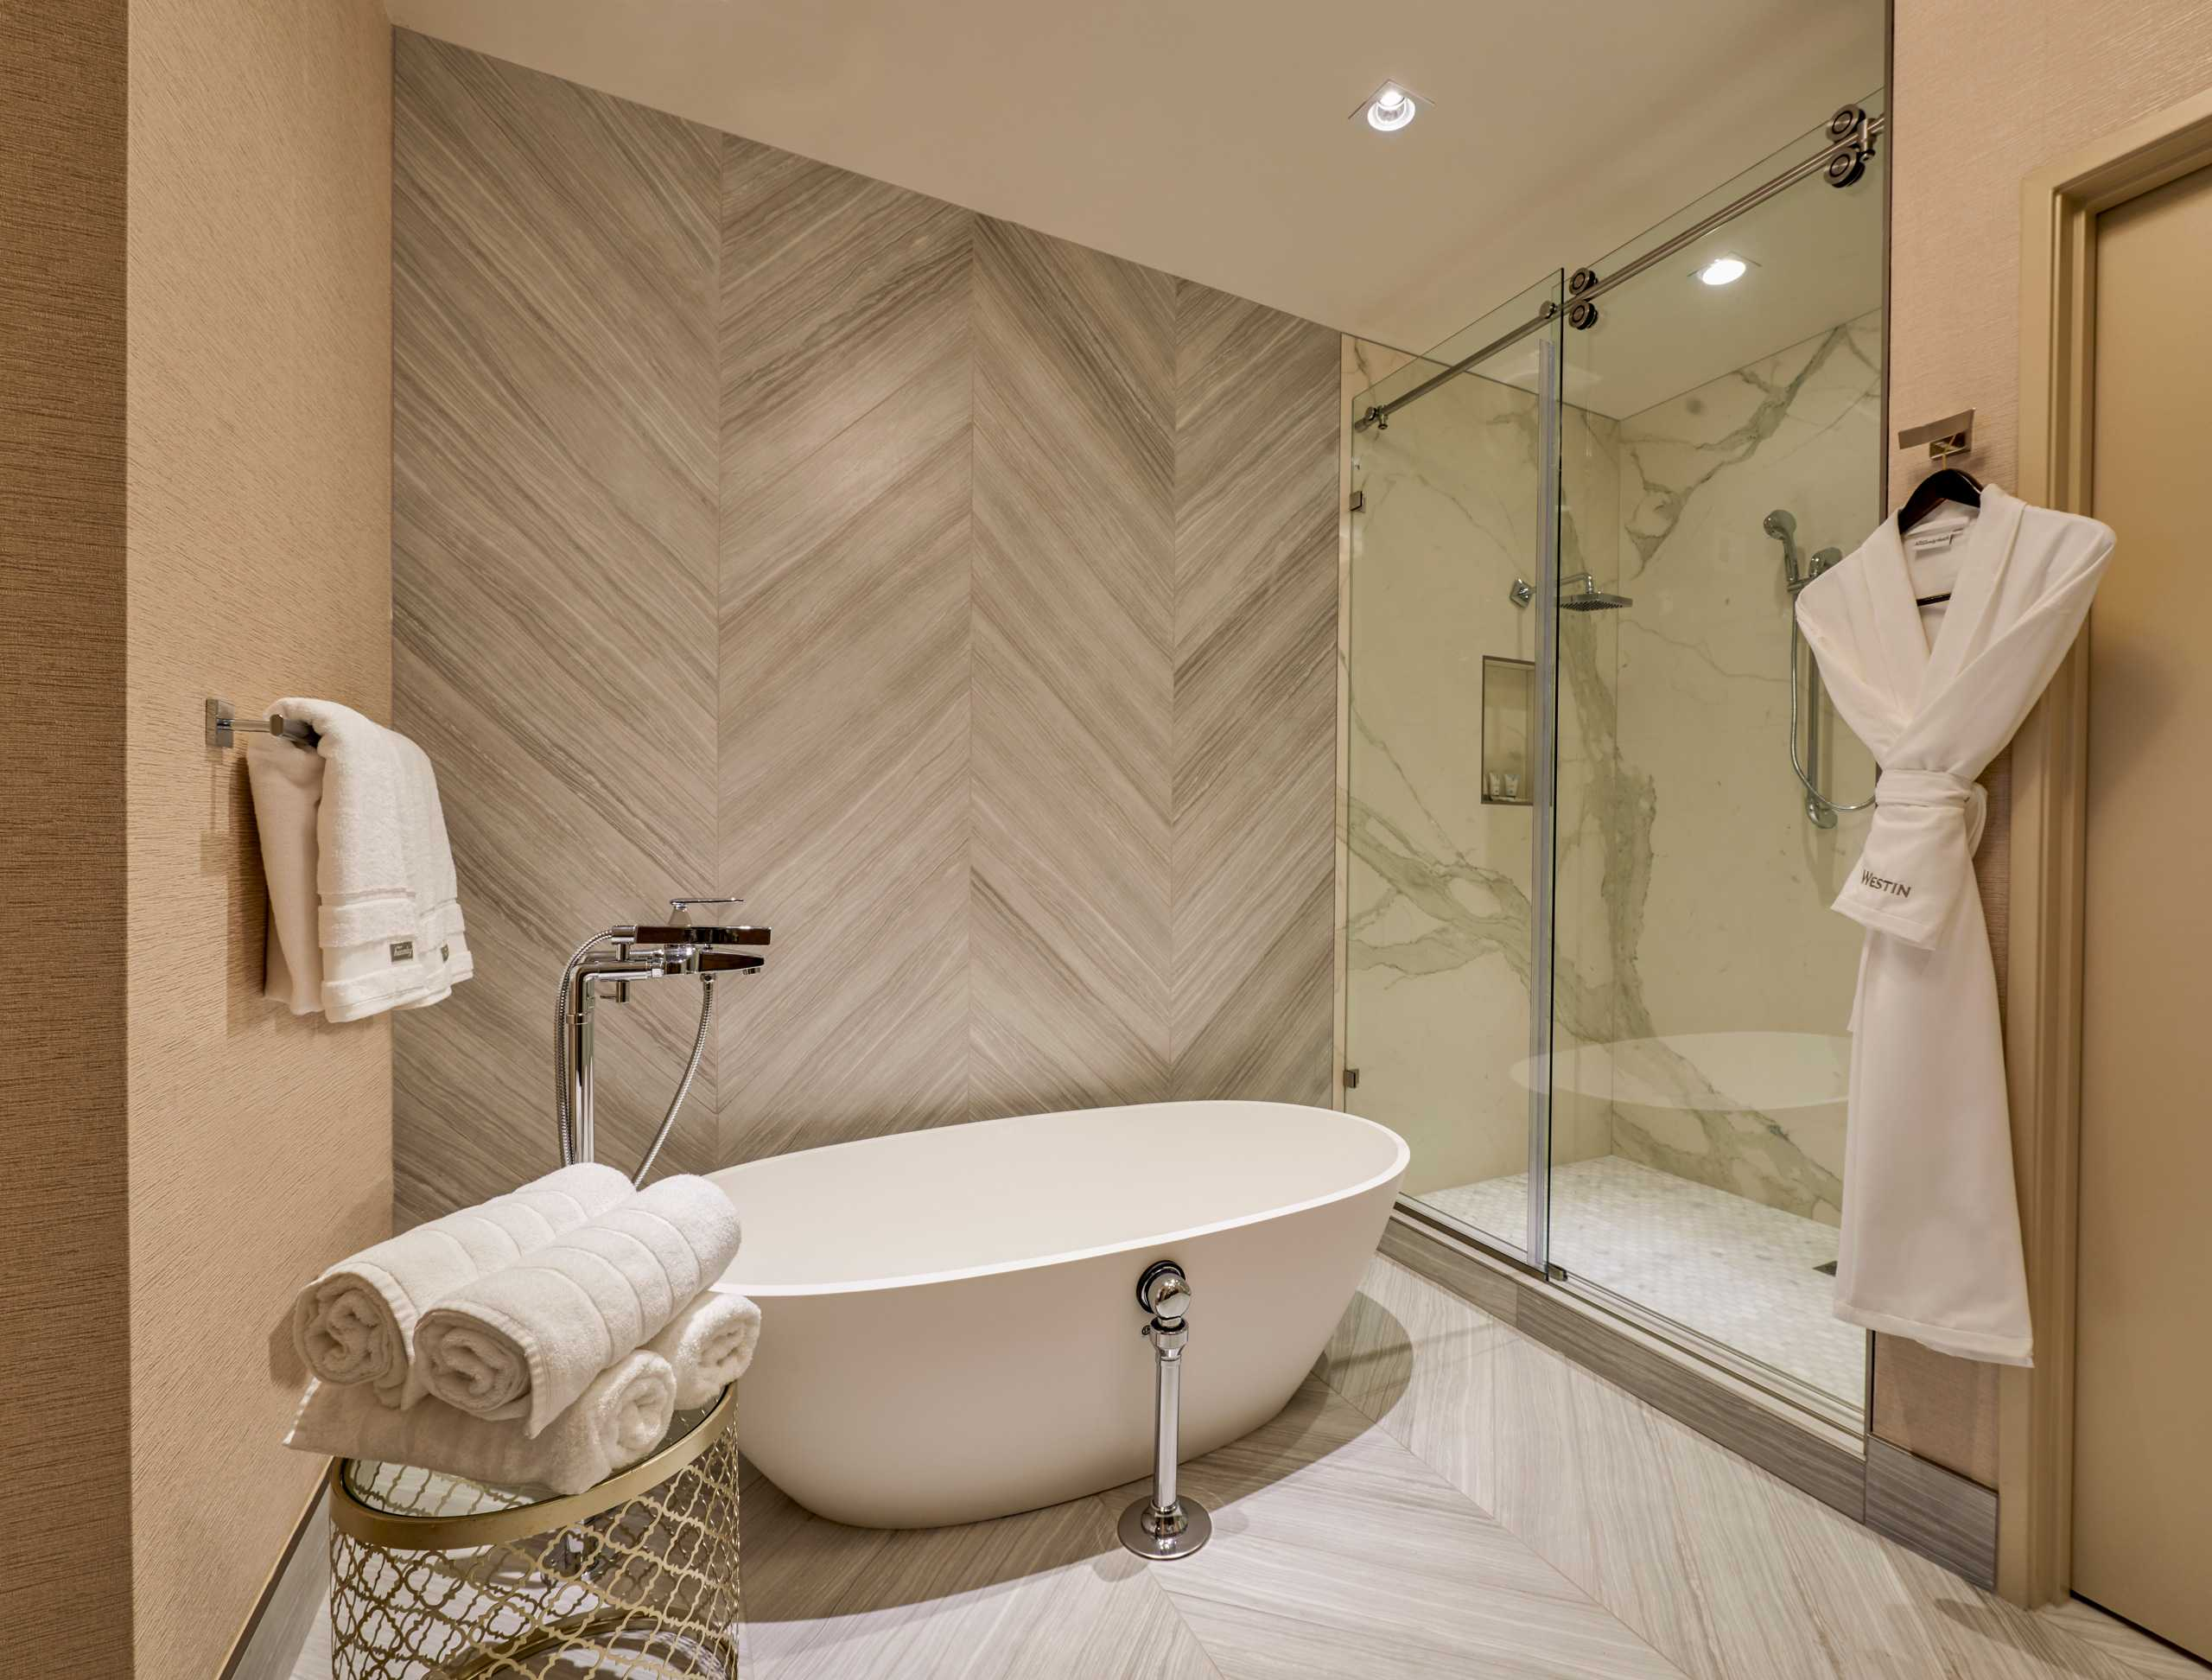 Presidential Suite Bathroom at The Westin Hotel and Spa in Las Vegas